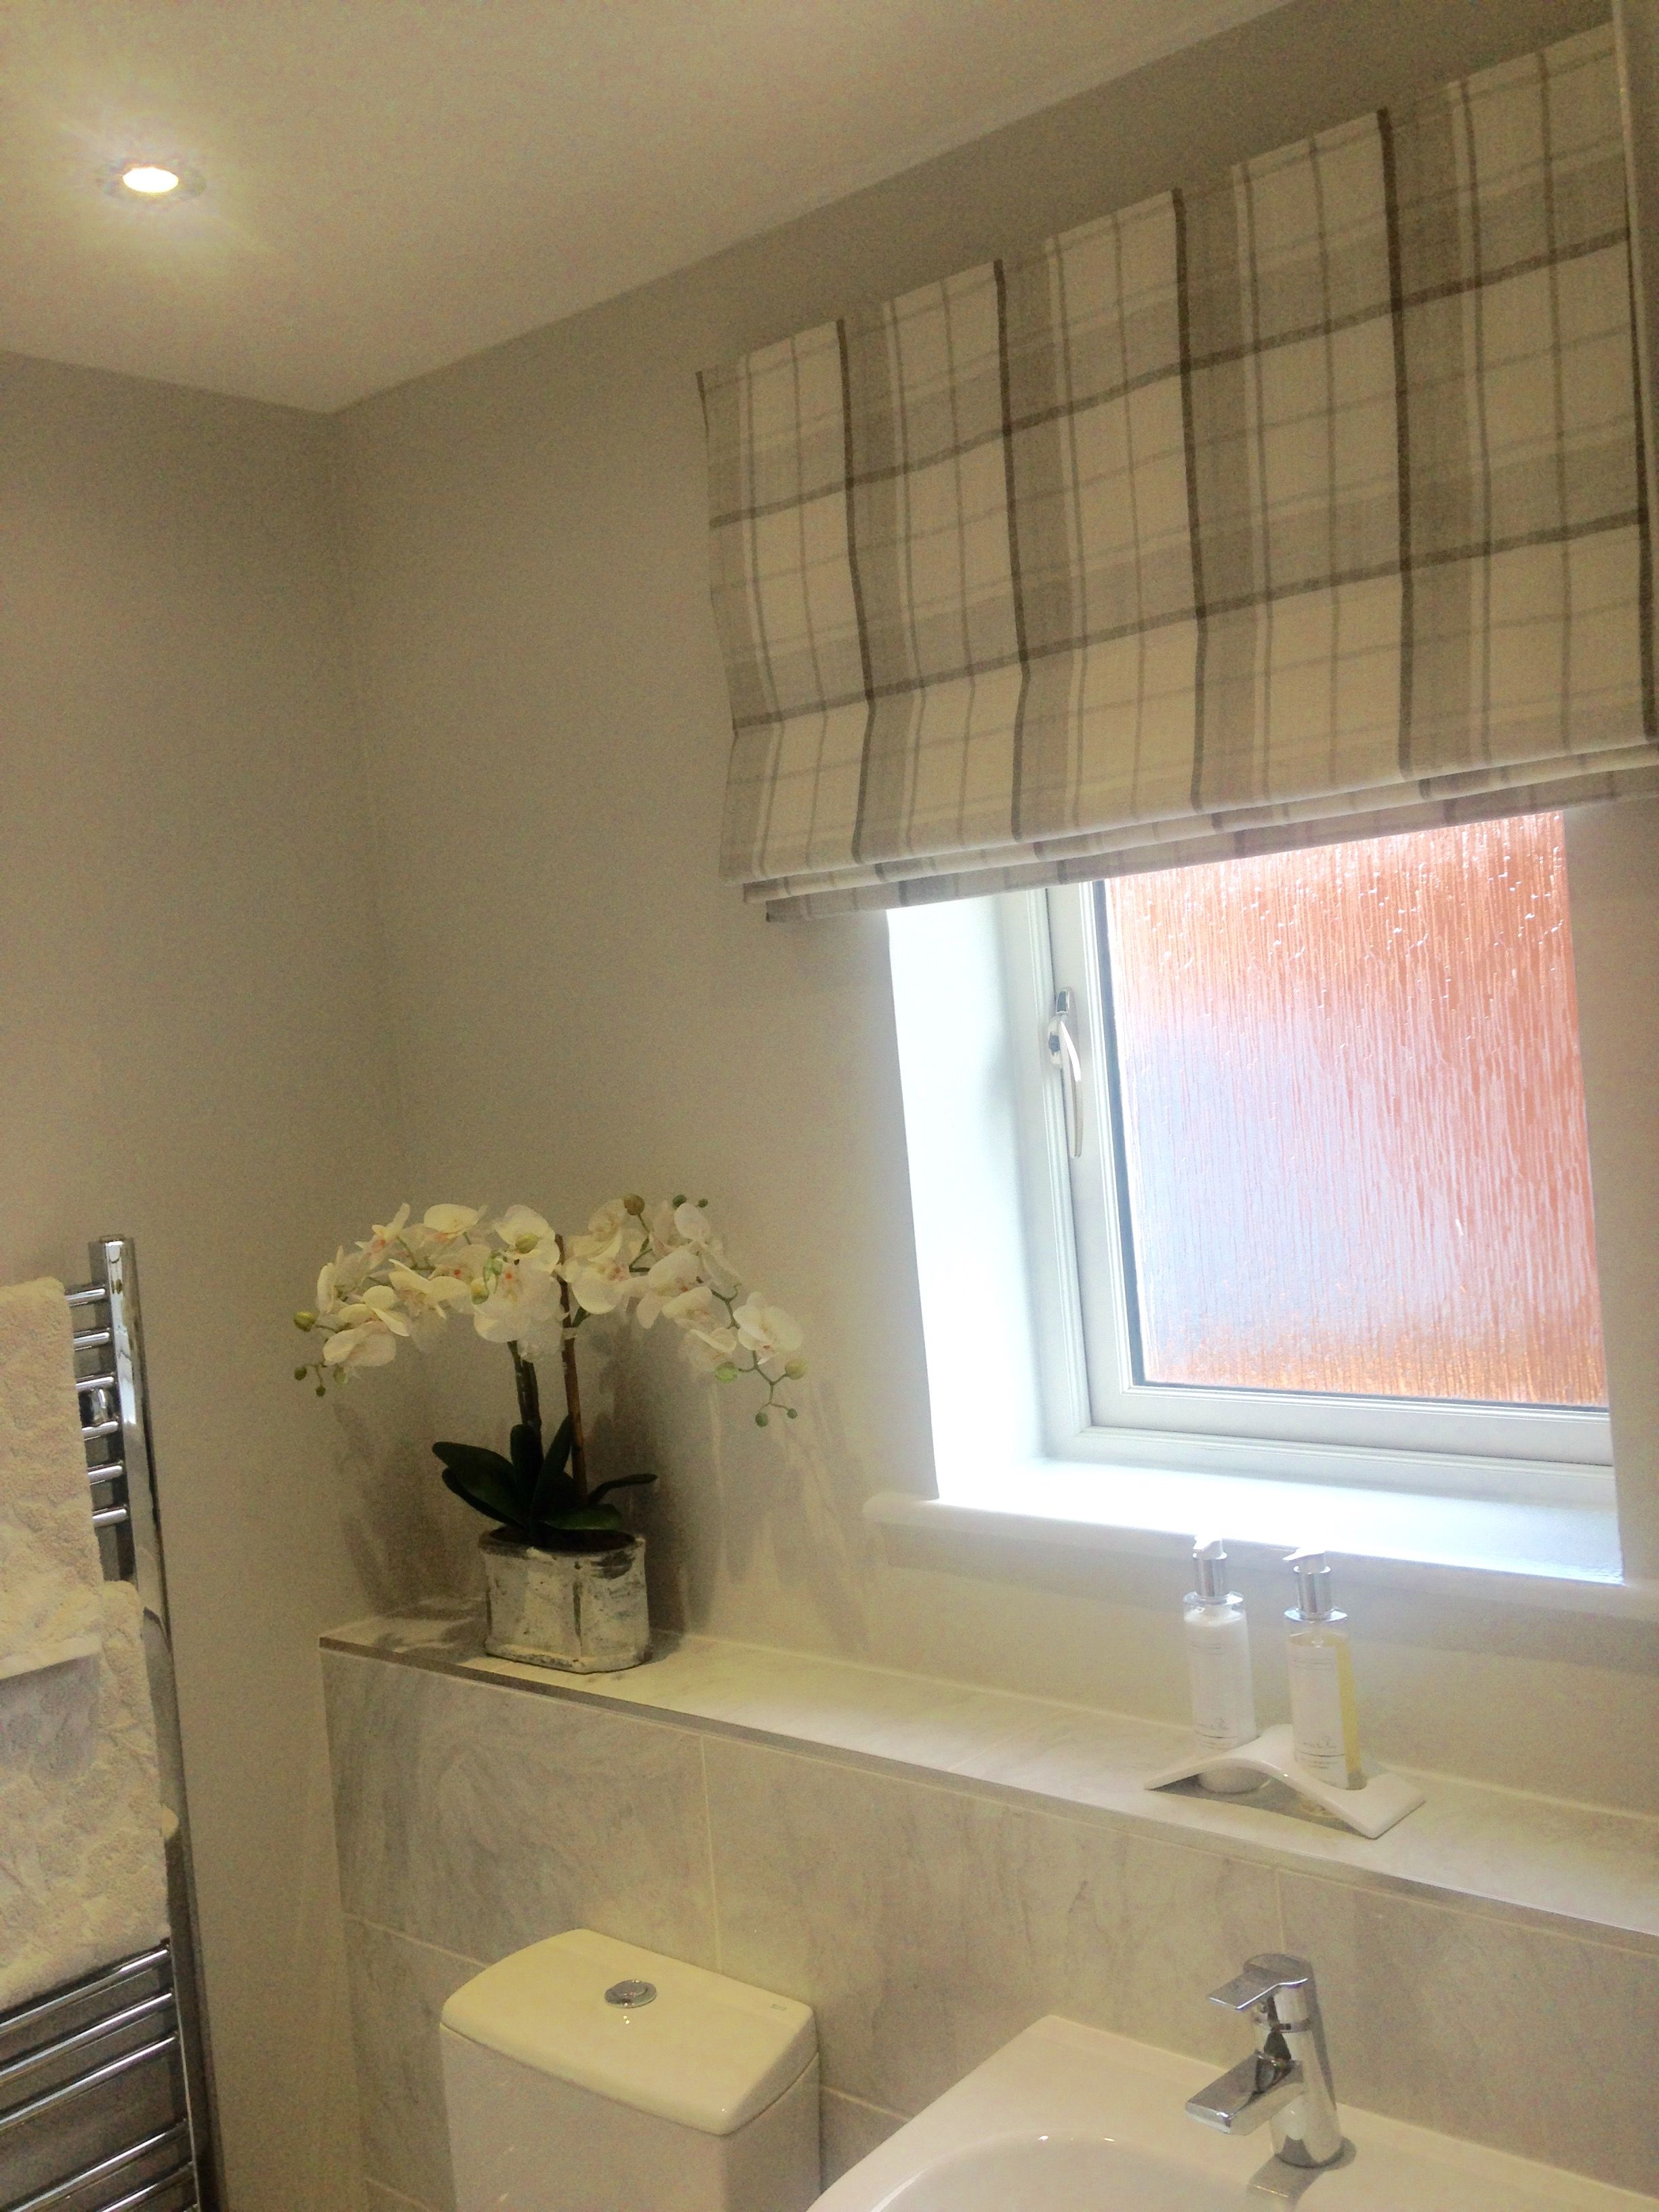 Roman Blind Made Using A Laura Ashley Fabric Roman Blinds - Waterproof blinds for the bathroom for bathroom decor ideas